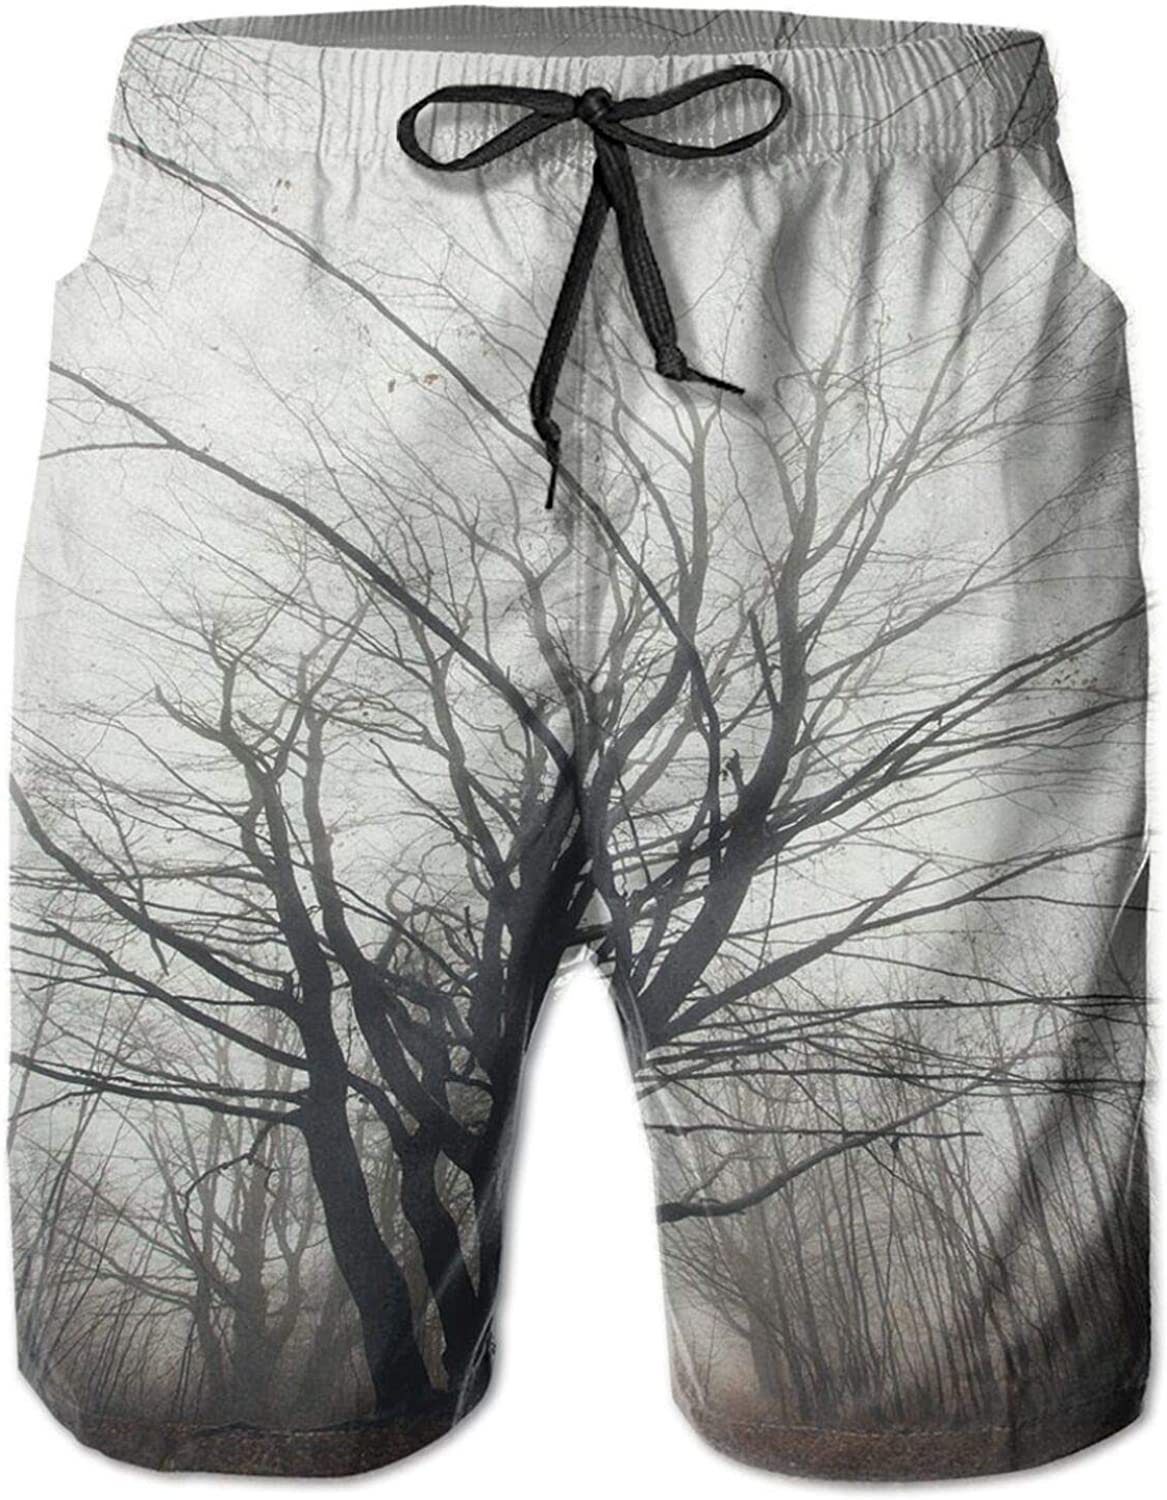 Vertical Photo of Autumn Tree in Dark Haunted Foggy Mist Mysterious Forest Picture Swimming Trunks for Men Beach Shorts Casual Style,L